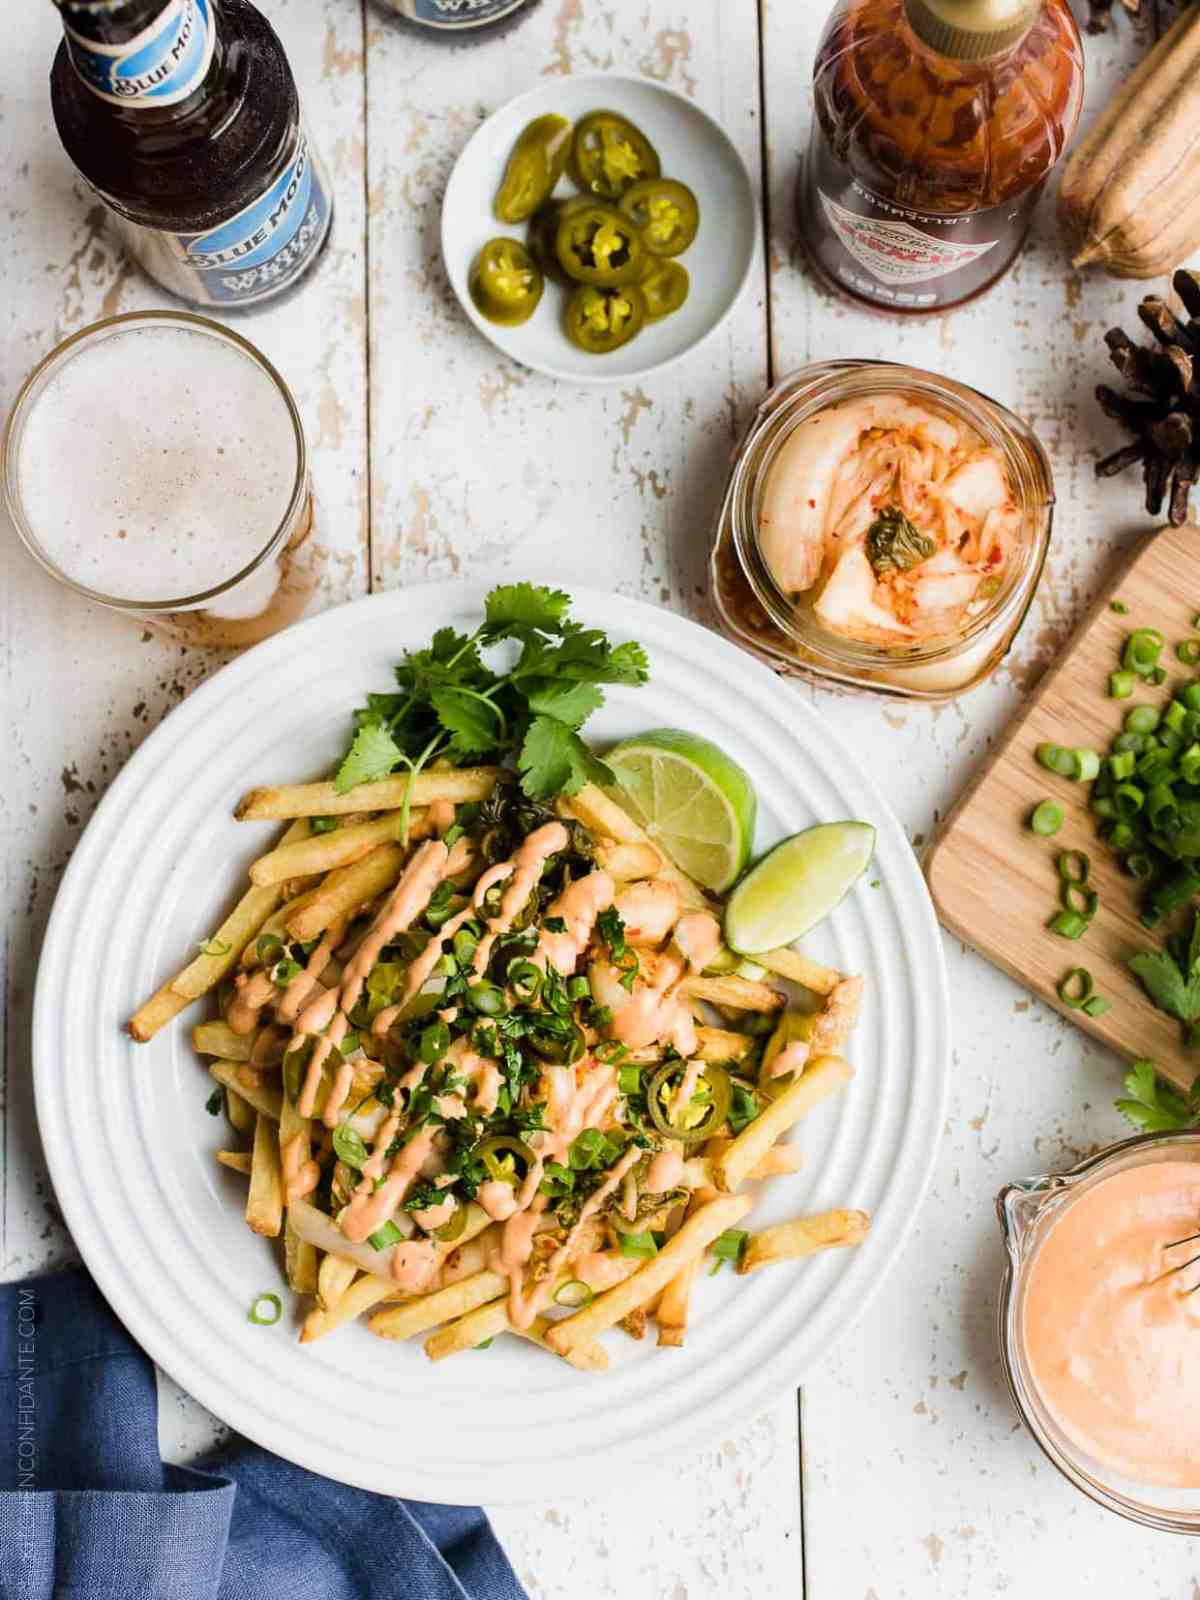 Overhead view of a plate filled with Kimchi French Fries and Belgian beer and a jar of kimchi in the background.